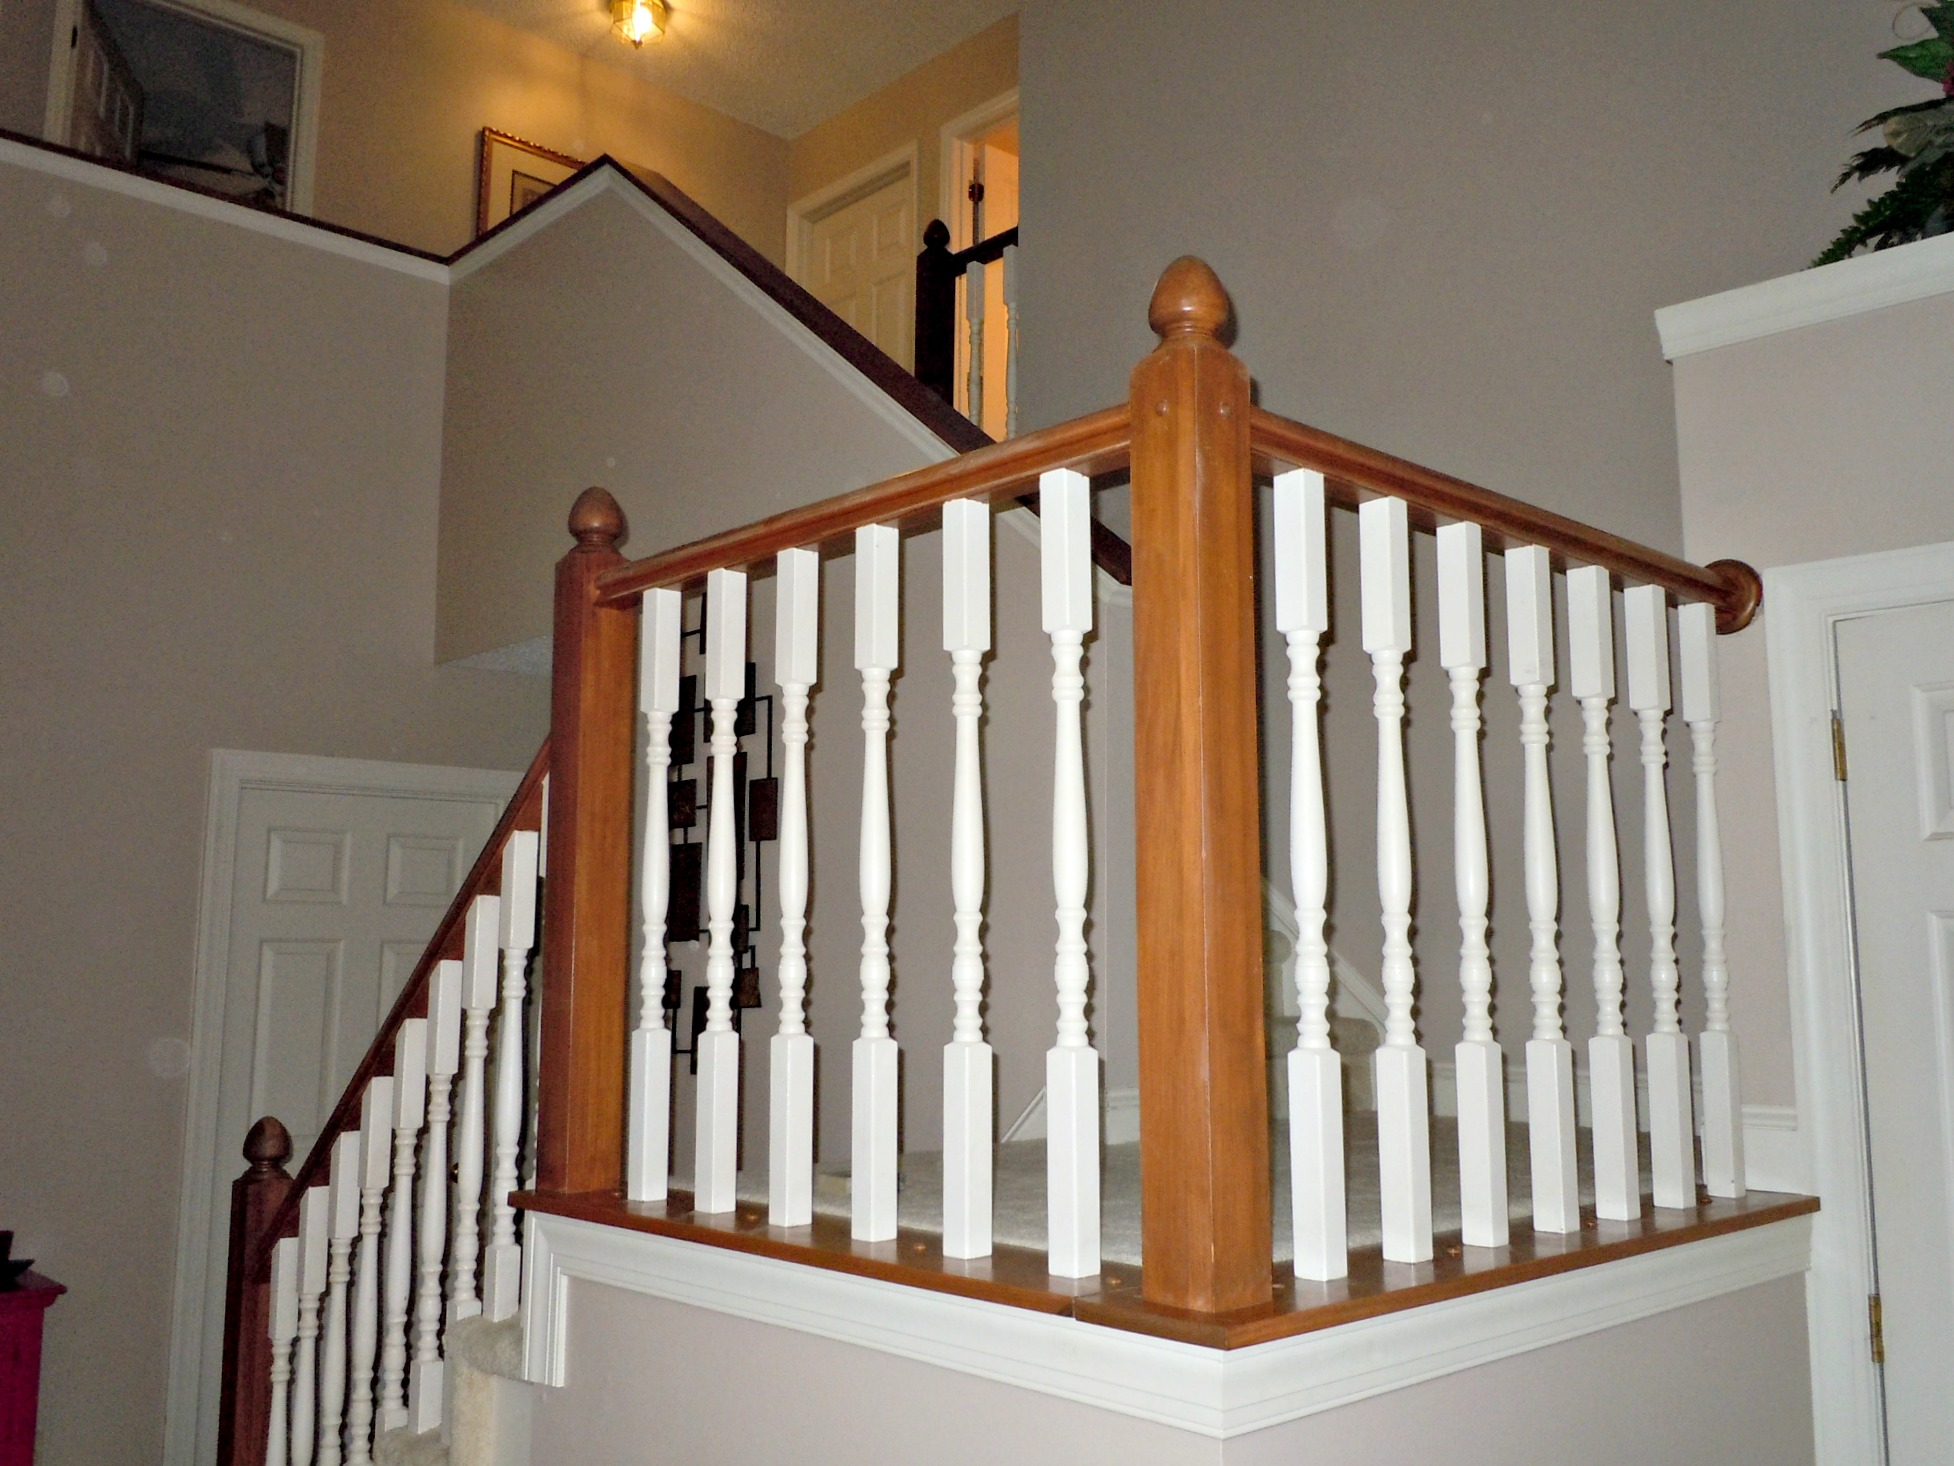 Remodelaholic | DIY Stair Banister Makeover Using Gel Stain